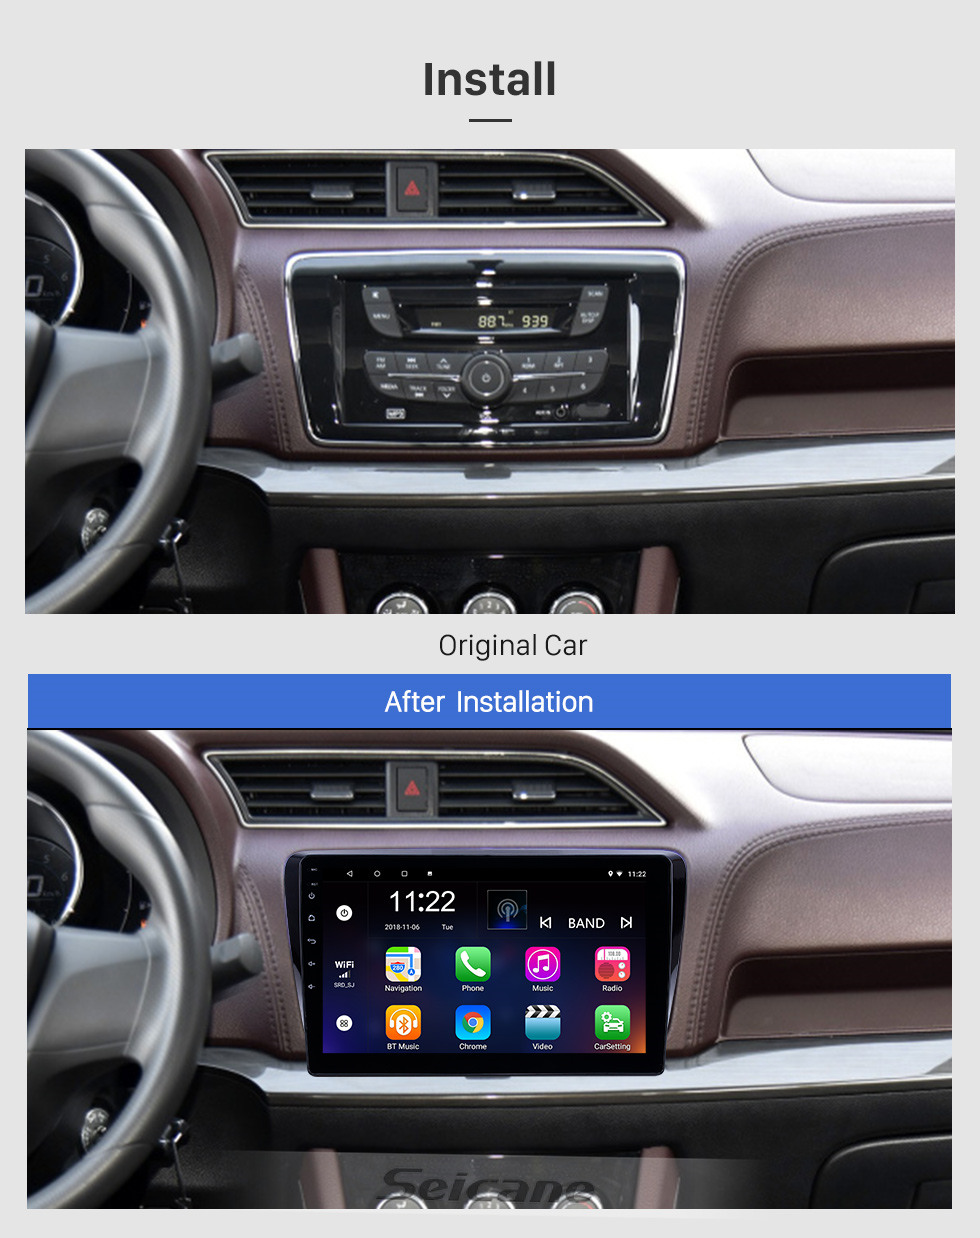 Seicane 10.1 inch GPS Navigation Radio Android 10.0 for 2017-2019 Venucia M50V With HD Touchscreen Bluetooth support Carplay Backup camera